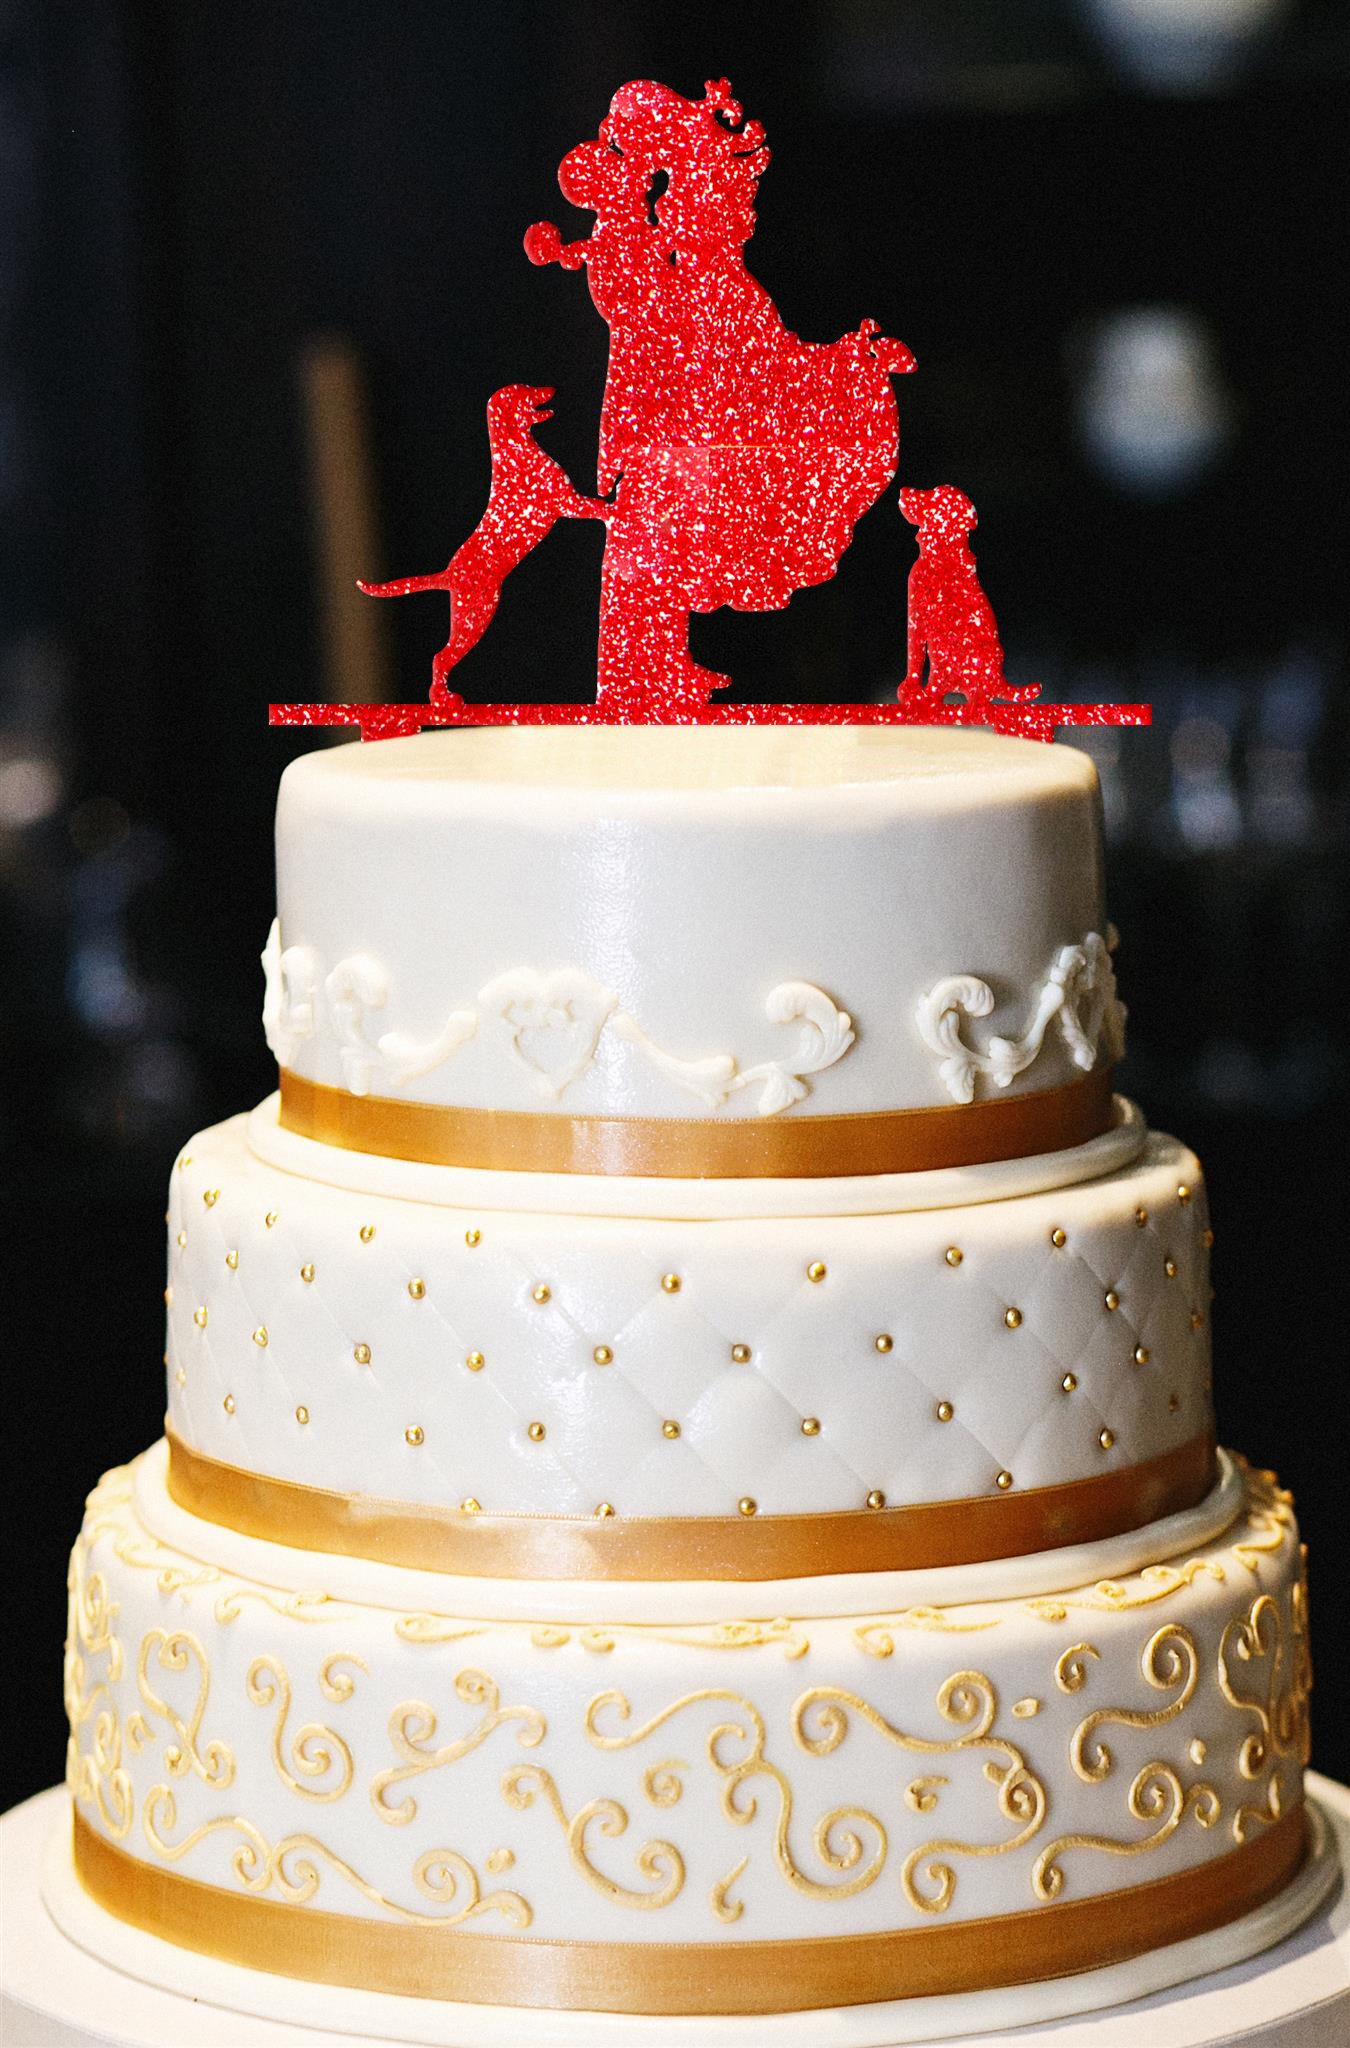 Mr. & Mrs. with Dogs Wedding Cake Topper, Glitter Wedding Cake Topper, Engagement Cake Topper, Gold Cake Topper, Gold Glitter Cake Topper (14'', Glitter Red)